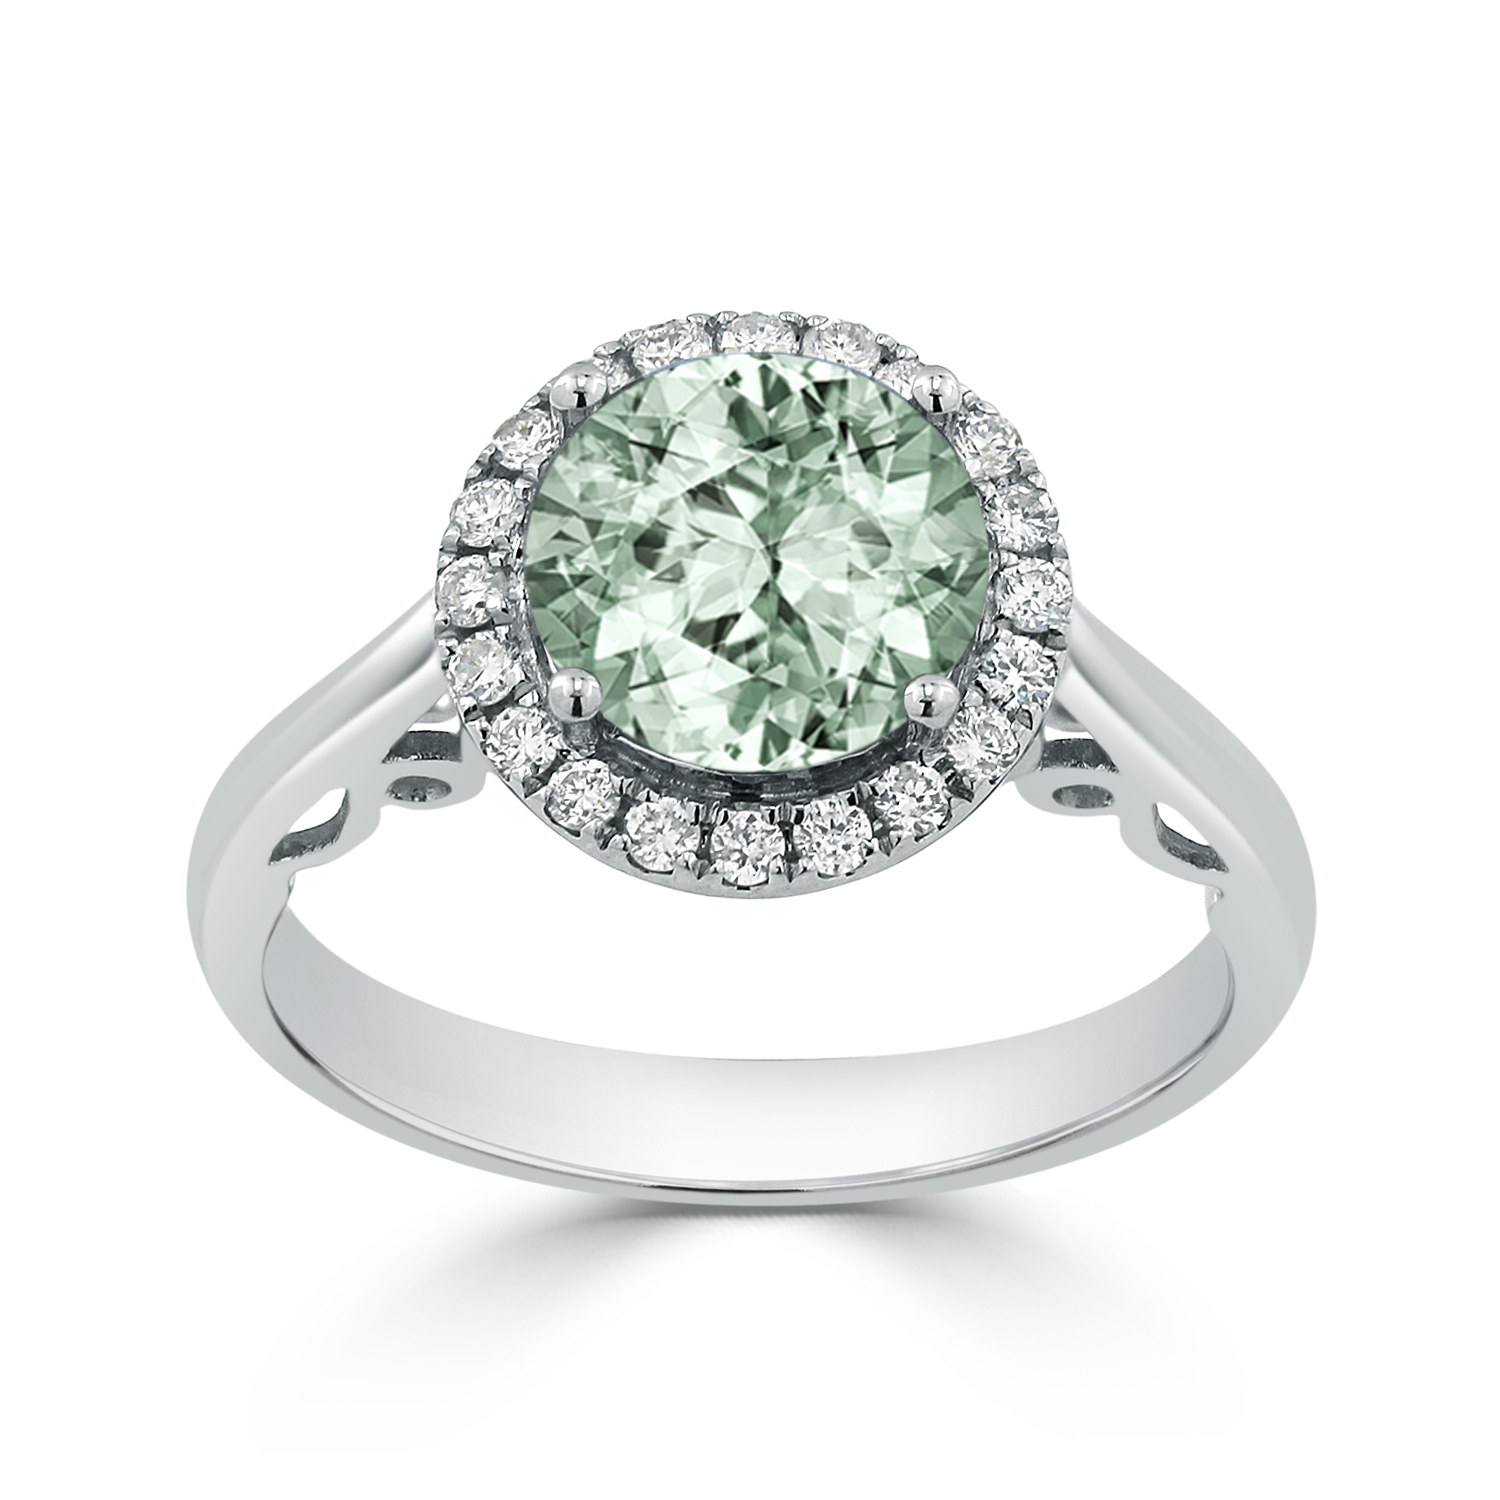 Halo Green Amethyst Diamond Ring in 14K White Gold with 1.75 carat Round Green Amethyst